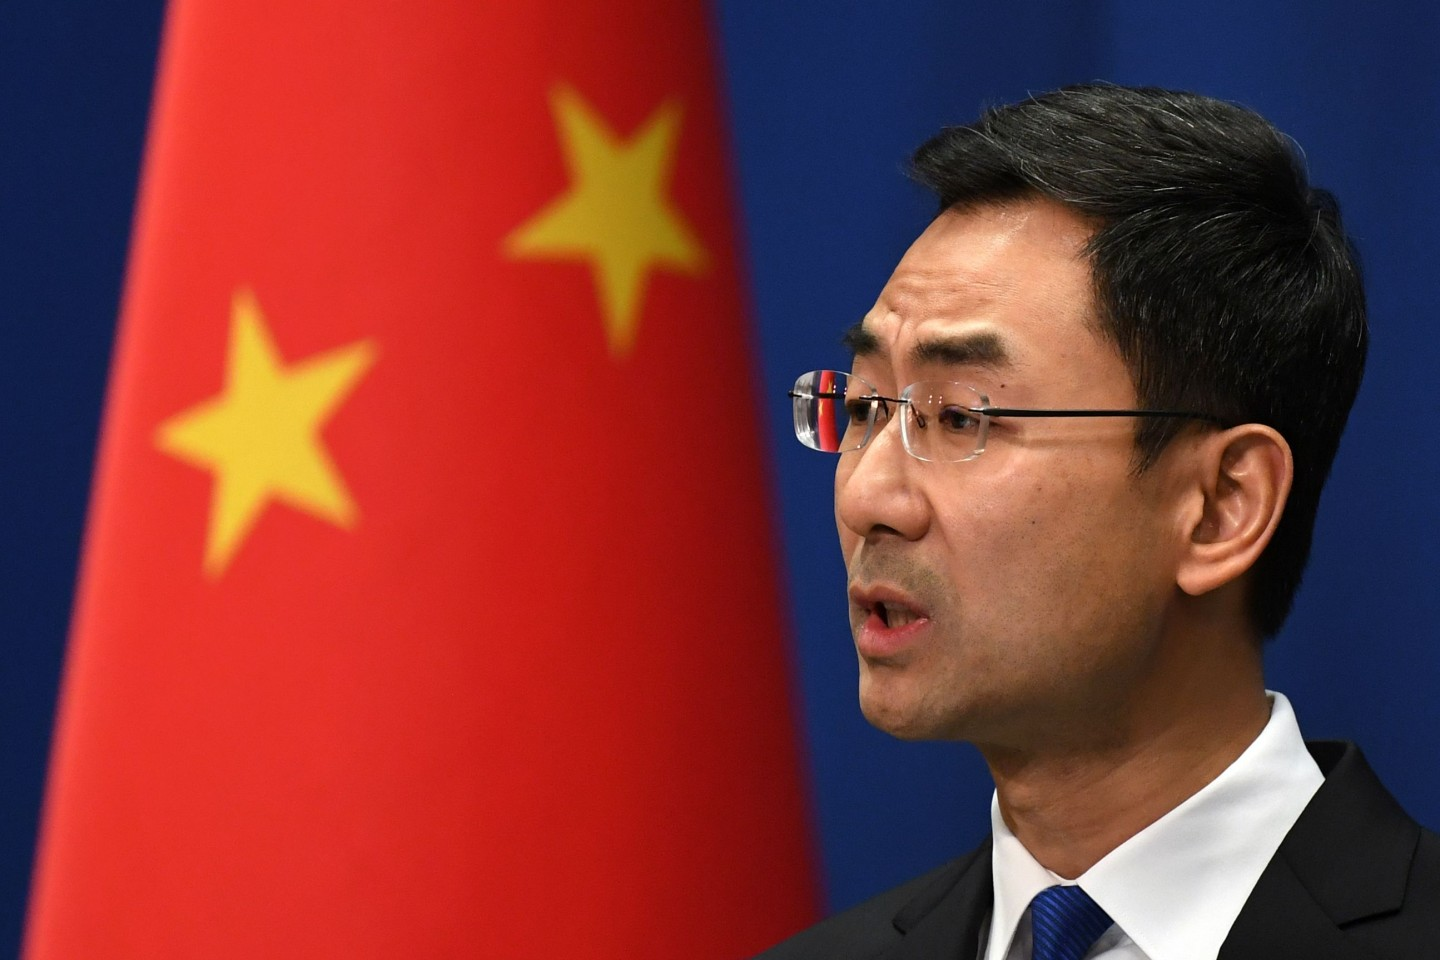 Chinese Foreign Ministry spokesperson Geng Shuang speaks during the daily press briefing in Beijing on 18 March 2020. (Greg Baker/AFP)